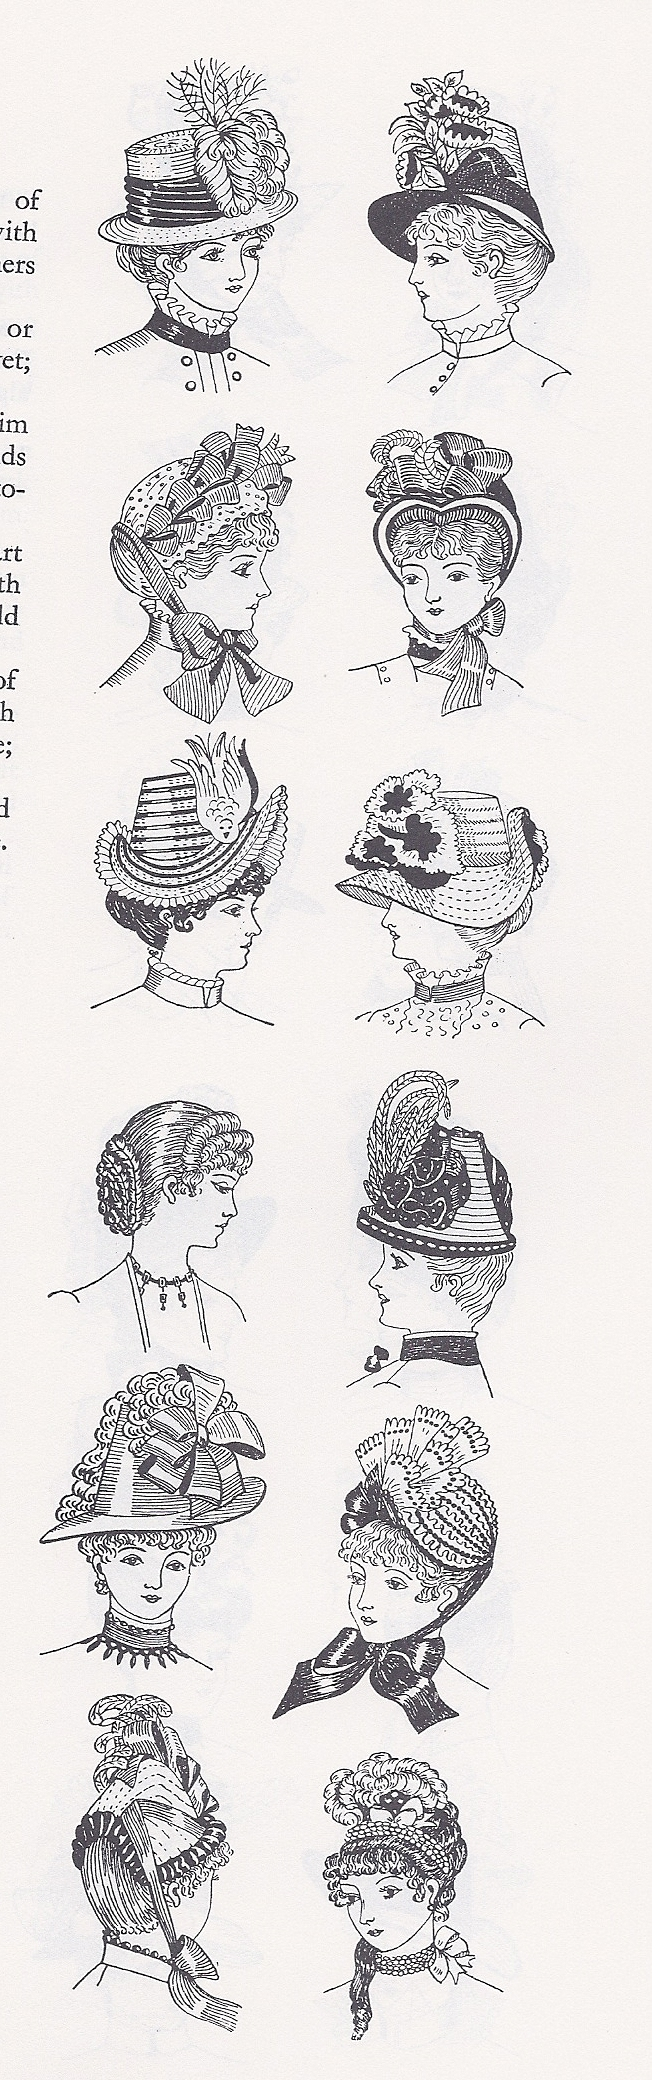 Hats and hairstyles from 1884-5